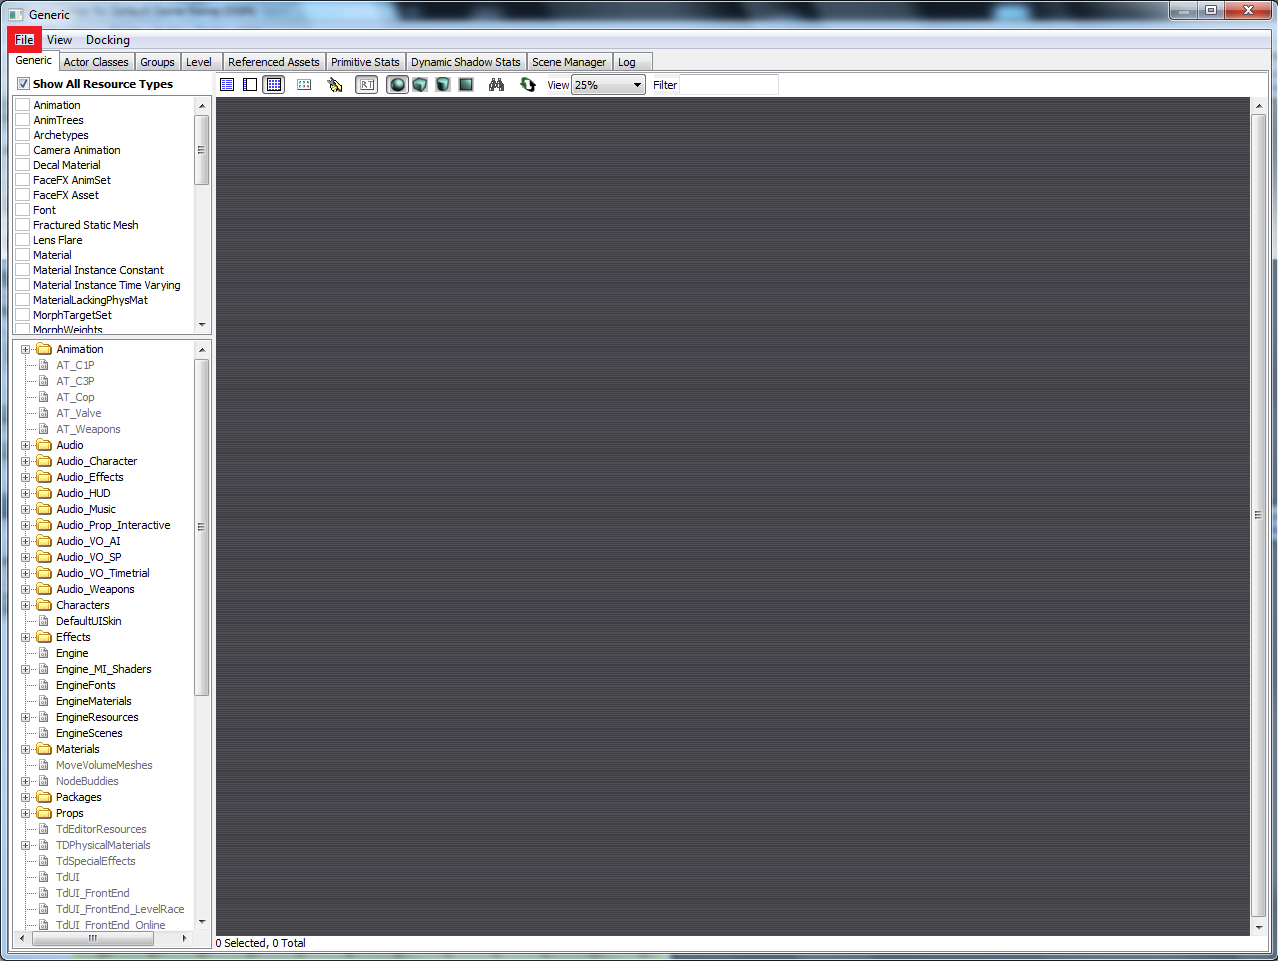 2 generic browser file-highlight